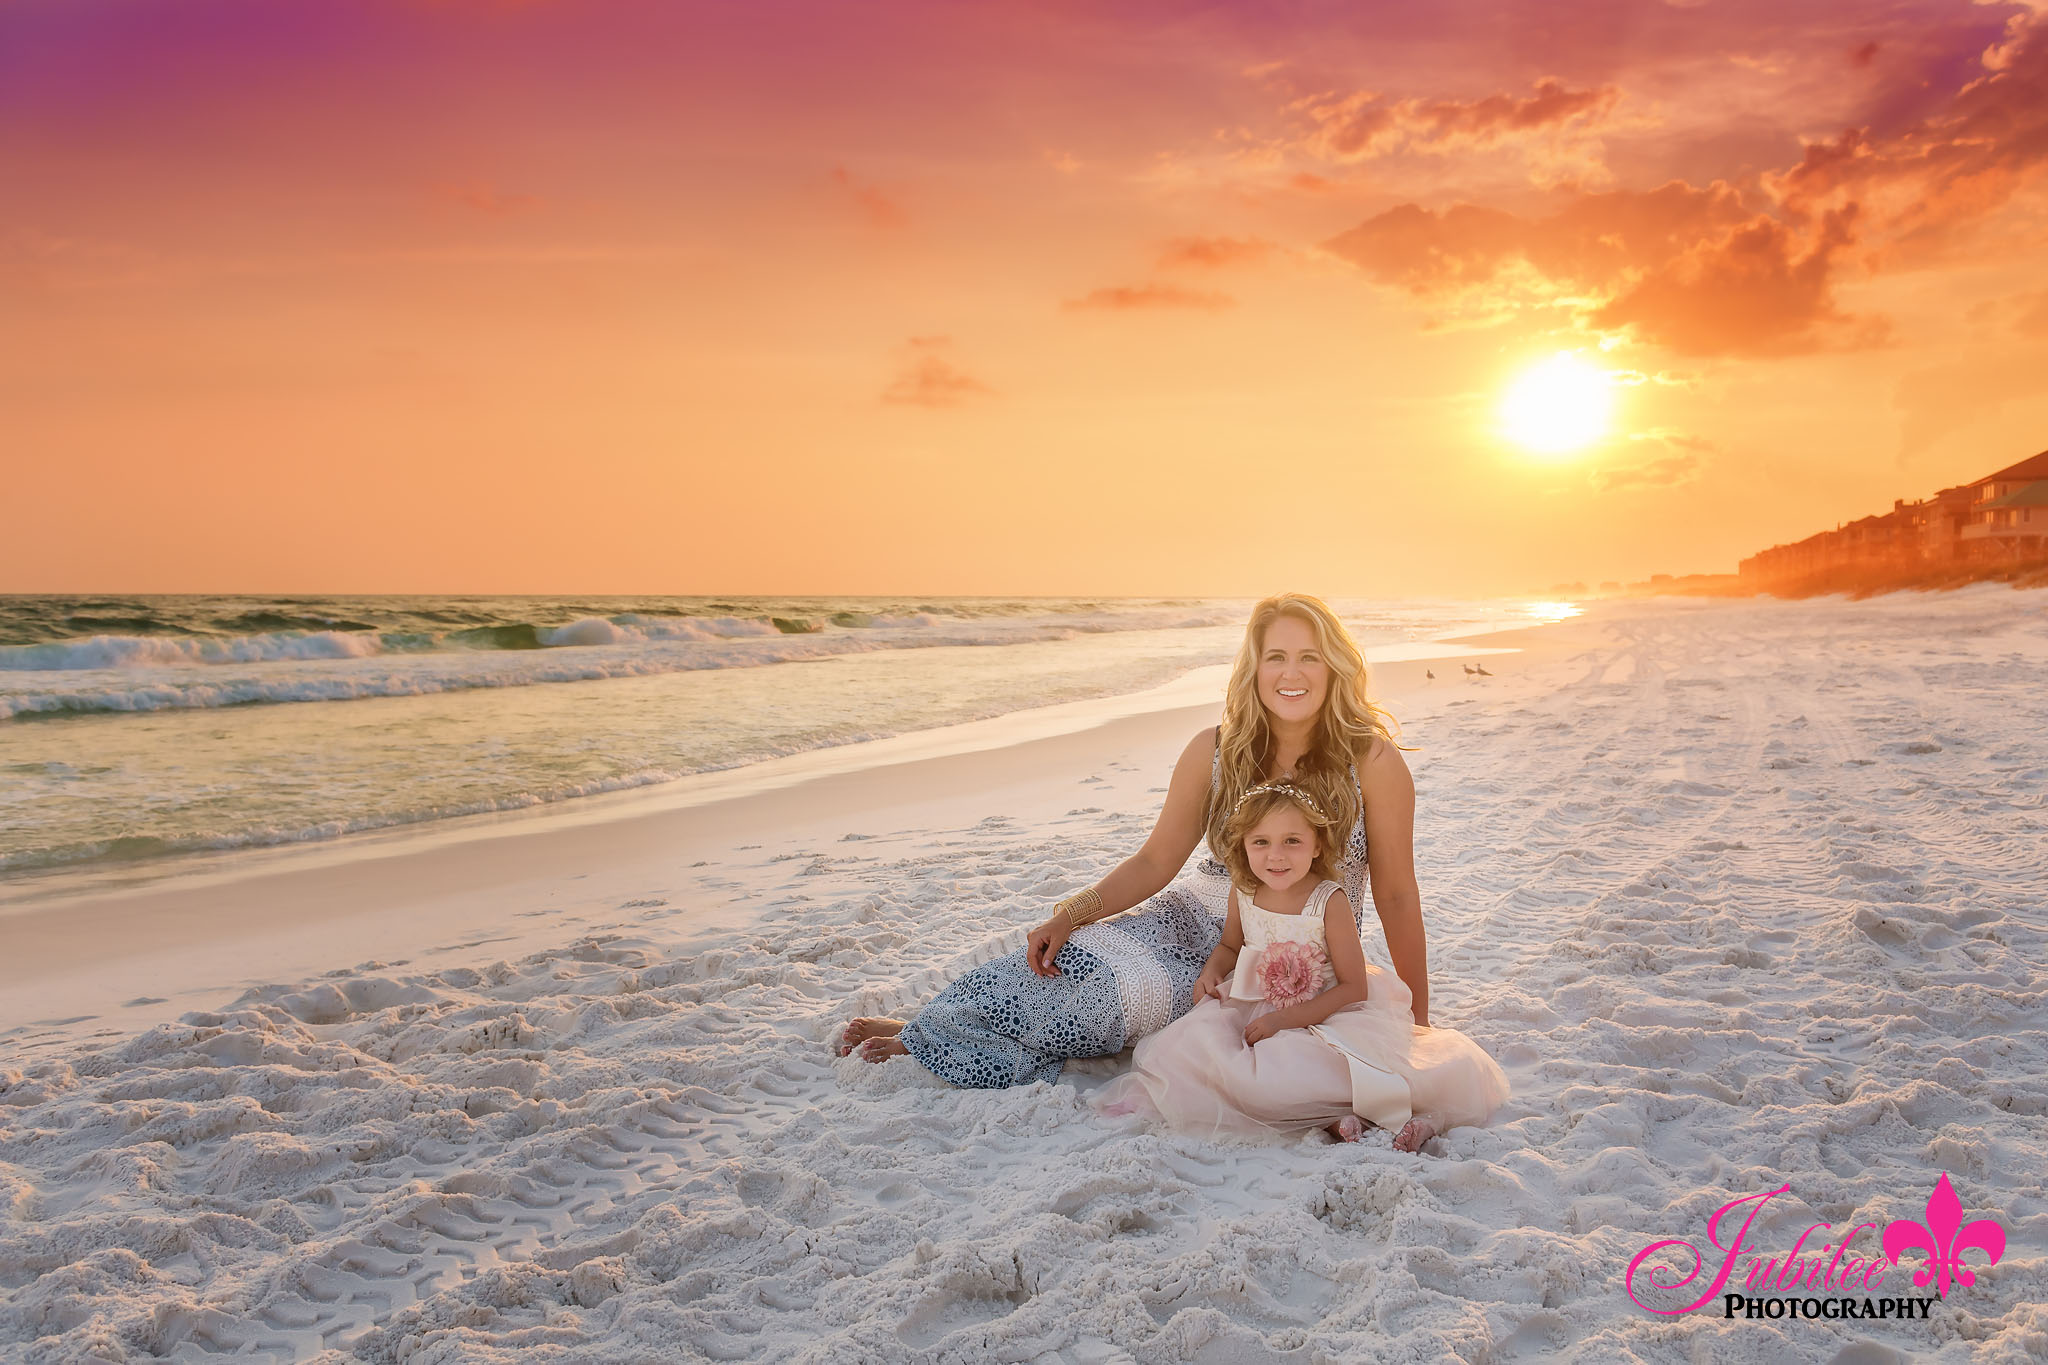 destin_beach_photographer_6191